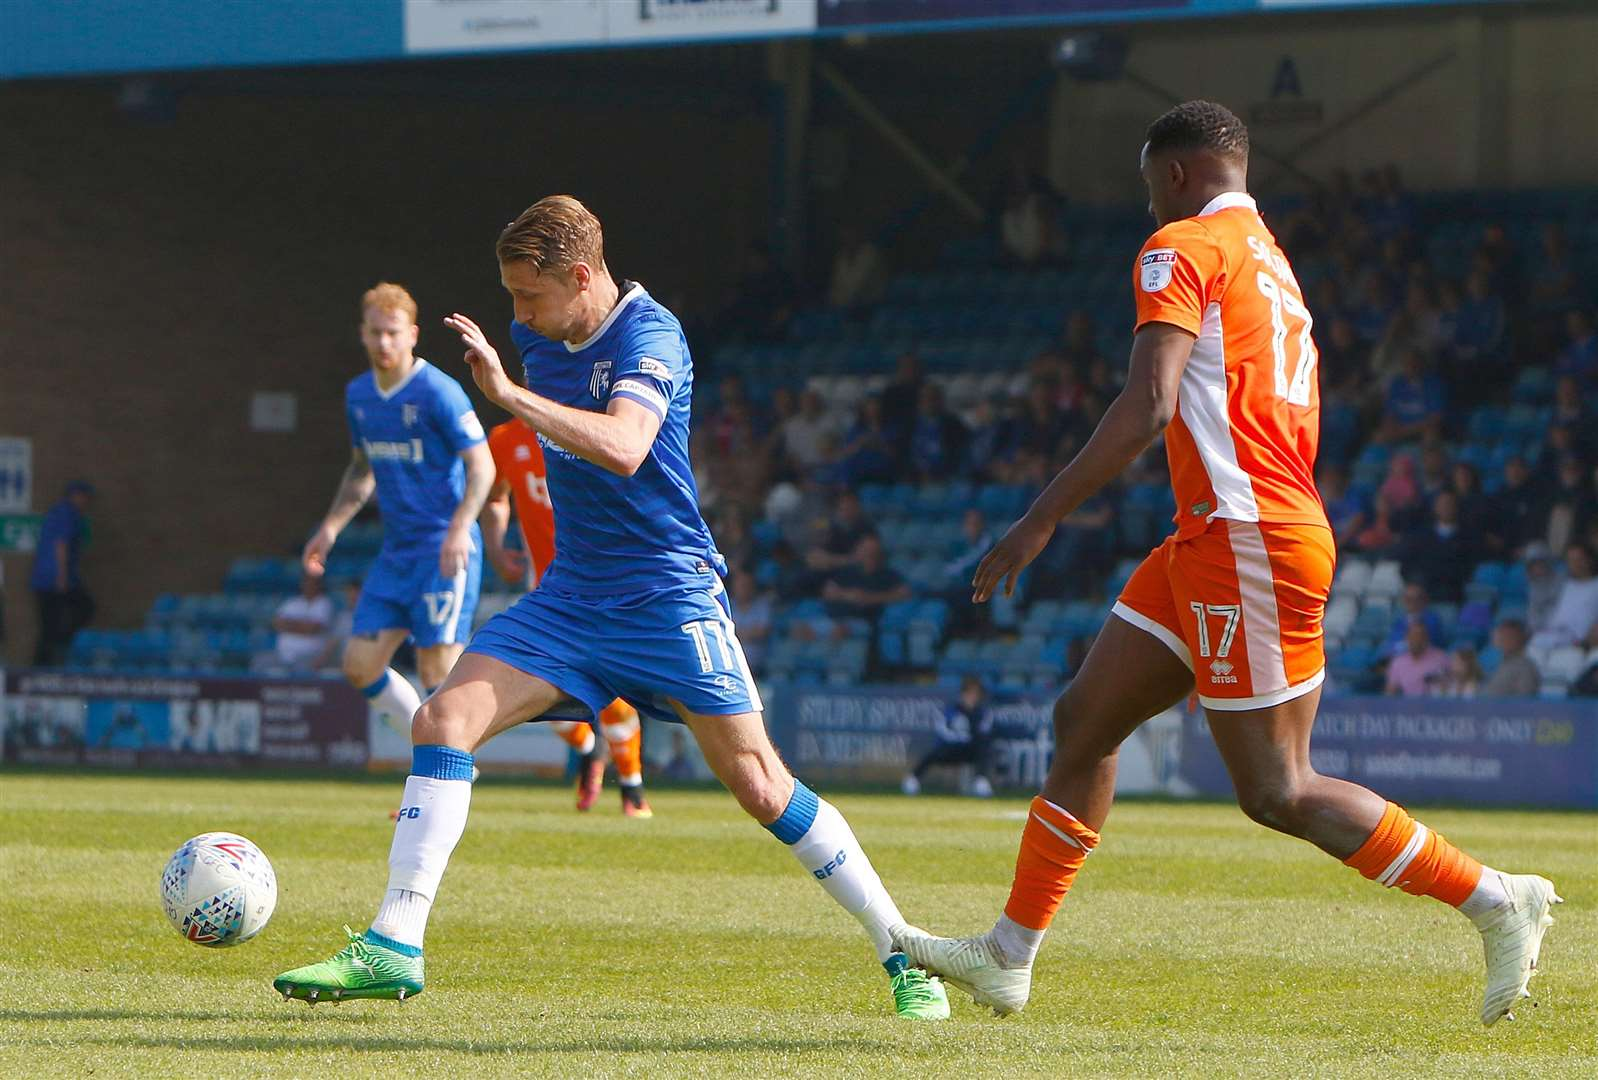 Gillingham midfielder Lee Martin on the ball Picture: Andy Jones